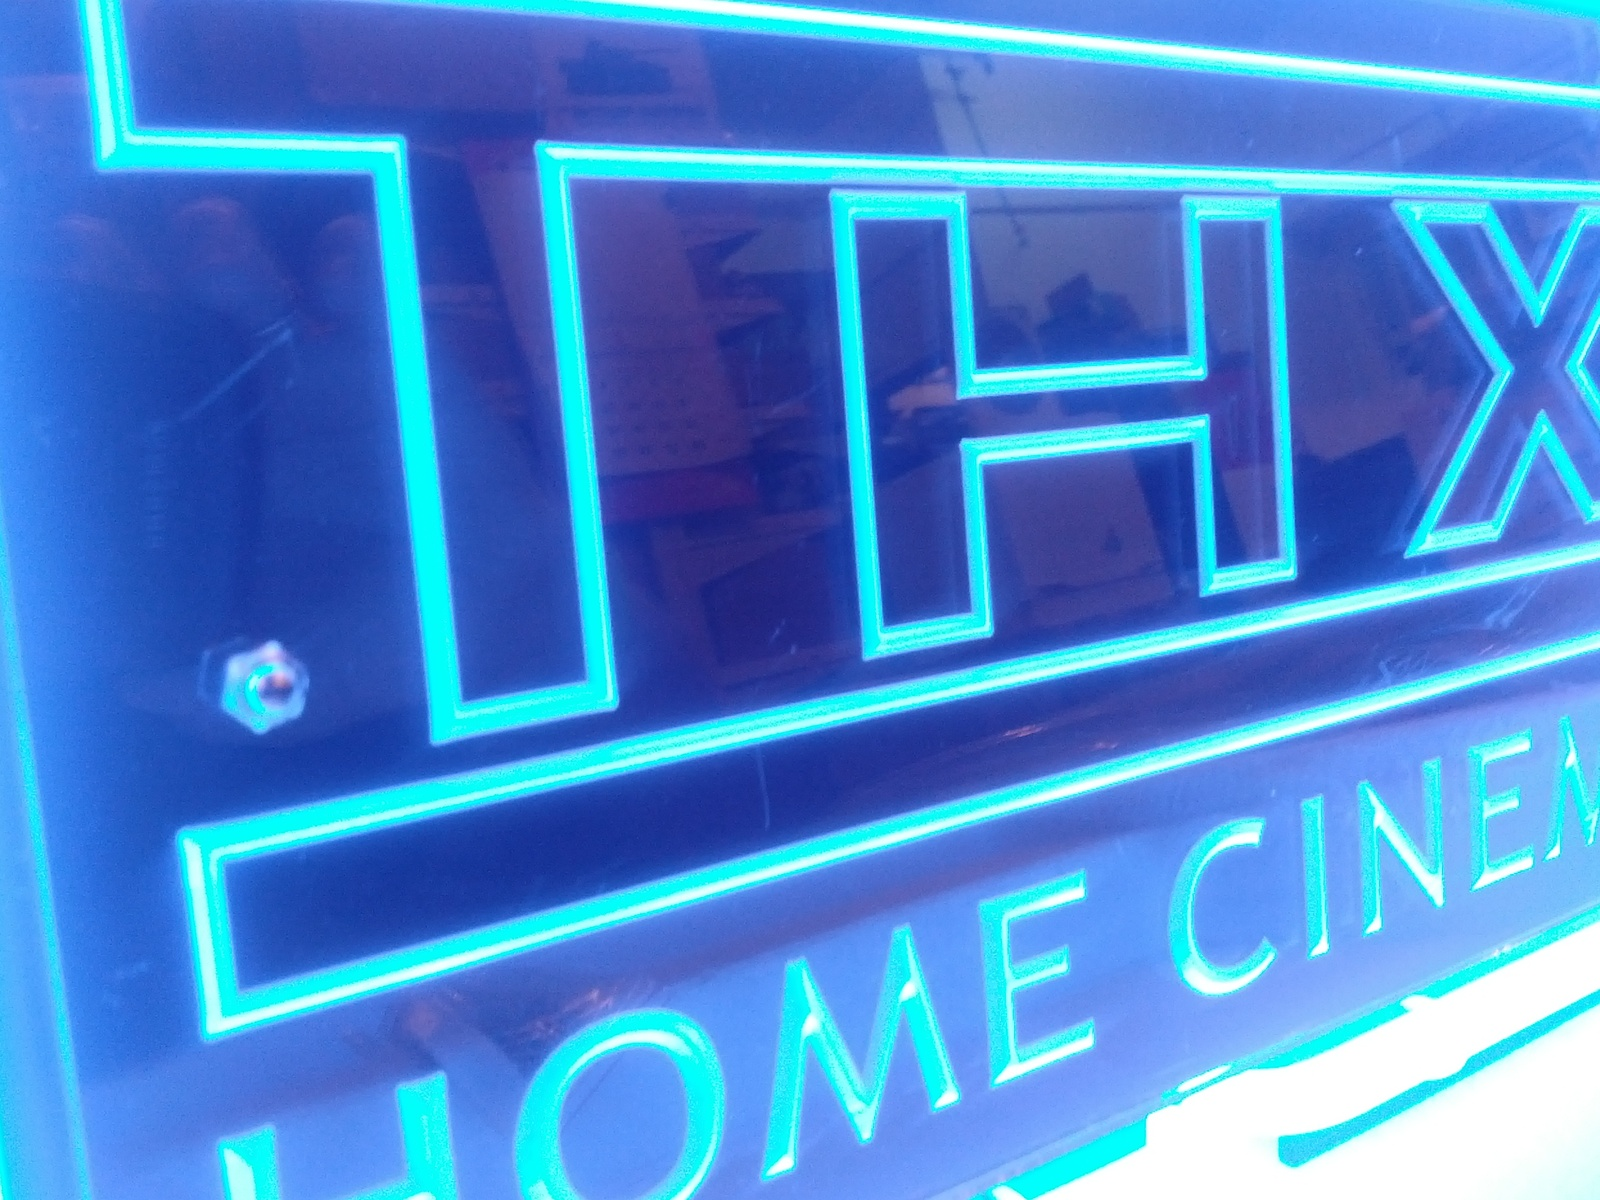 Sb152 Thx Home Cinema Video Decor Display Beer Bar Neon